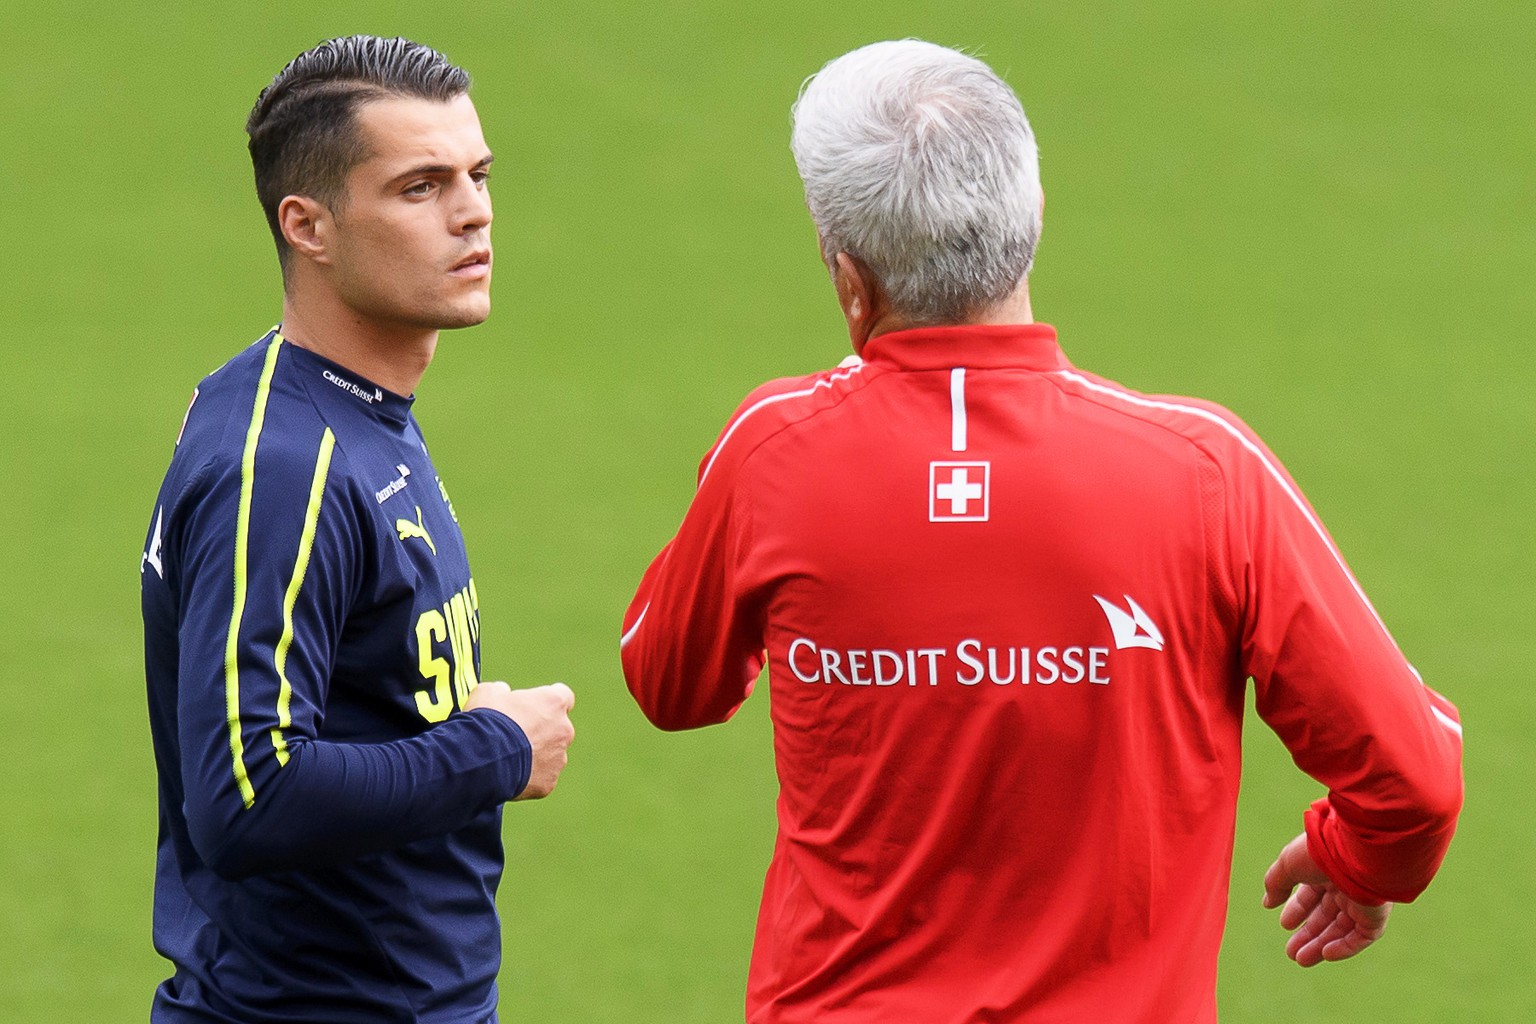 epa06780889 Swiss national soccer team head coach Vladimir Petkovic (R) gives instructions to Granit Xhaka (L) during their team's training session at La Ceramica stadium in Villarreal, Spain, 02 June 2018. The Swiss team will face Spain in their International Friendly soccer match in Villarreal on 03 June 2018.  EPA/LAURENT GILLIERON